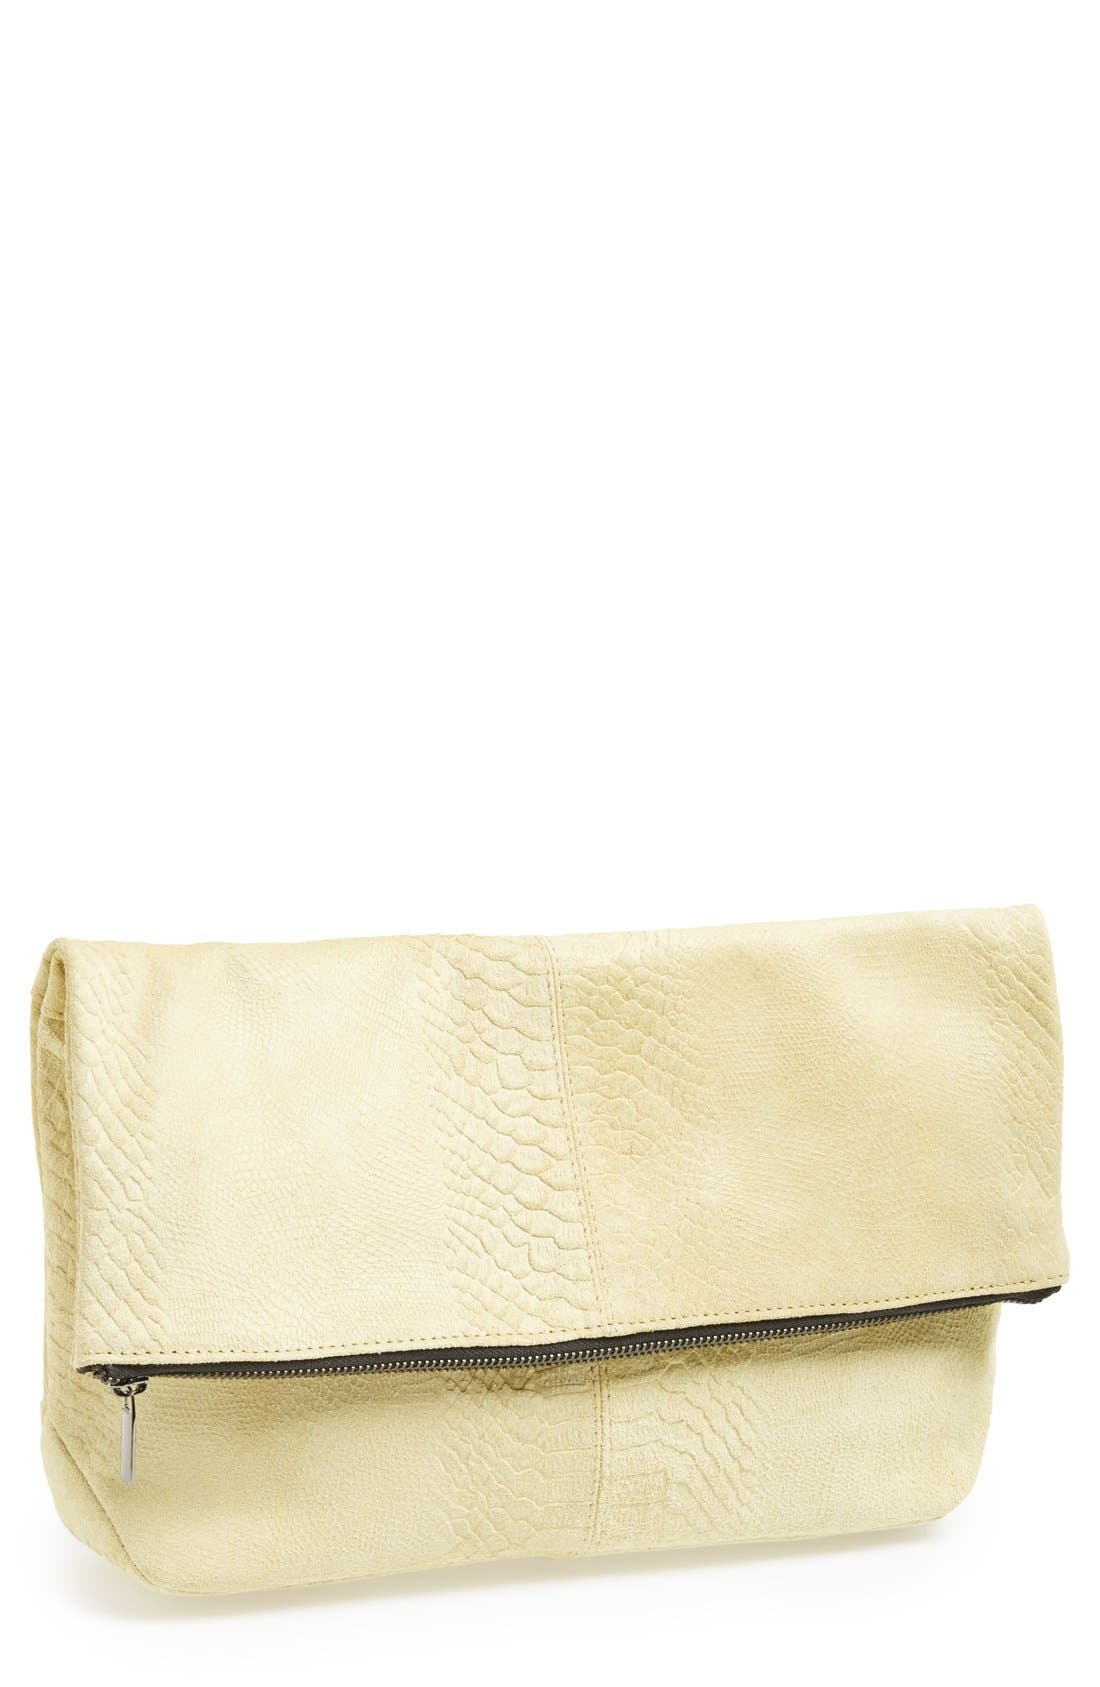 Alternate Image 1 Selected - Topshop Snake Embossed Suede Clutch